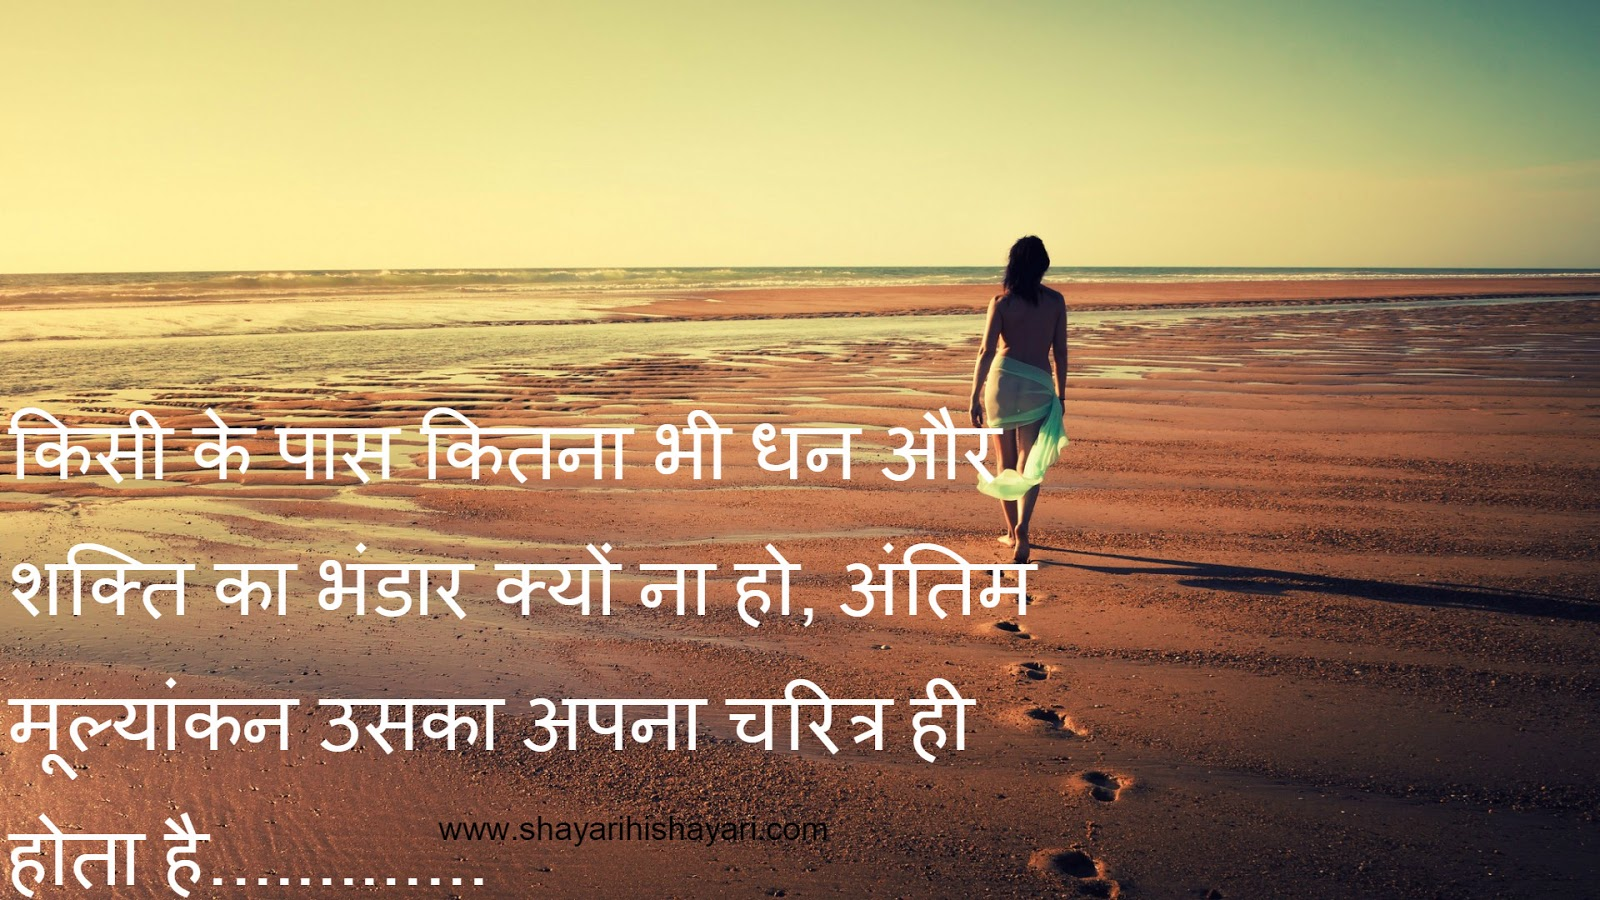 Shayari Hi Shayari: hindi love shayari image download ,Hindi Shayari ...